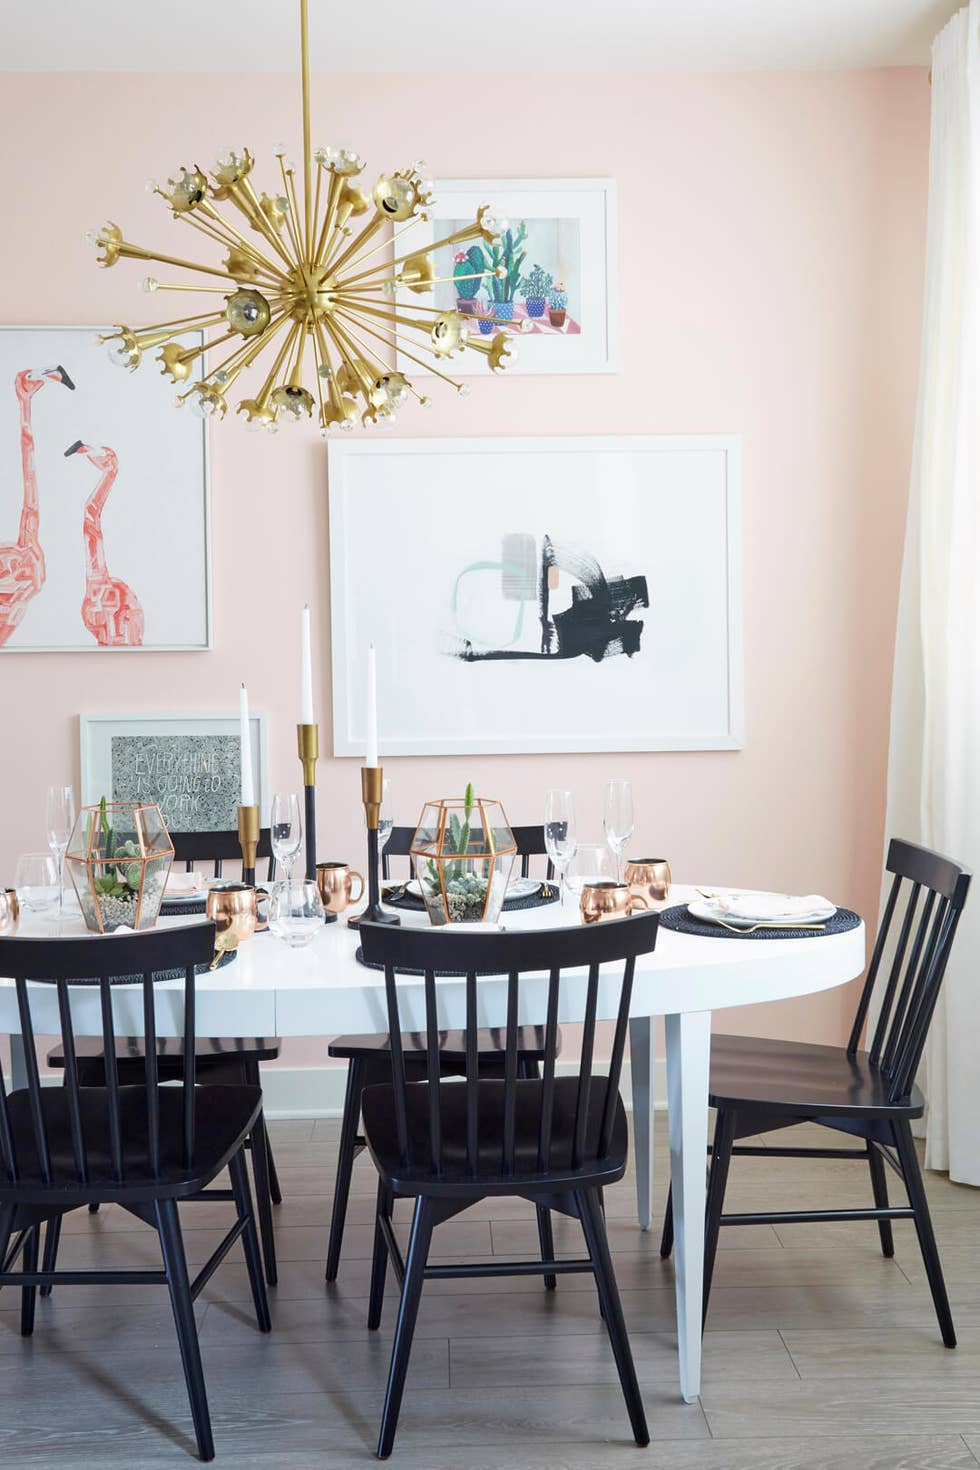 The Color Choice Ideas for Minimalist Dining Room Design